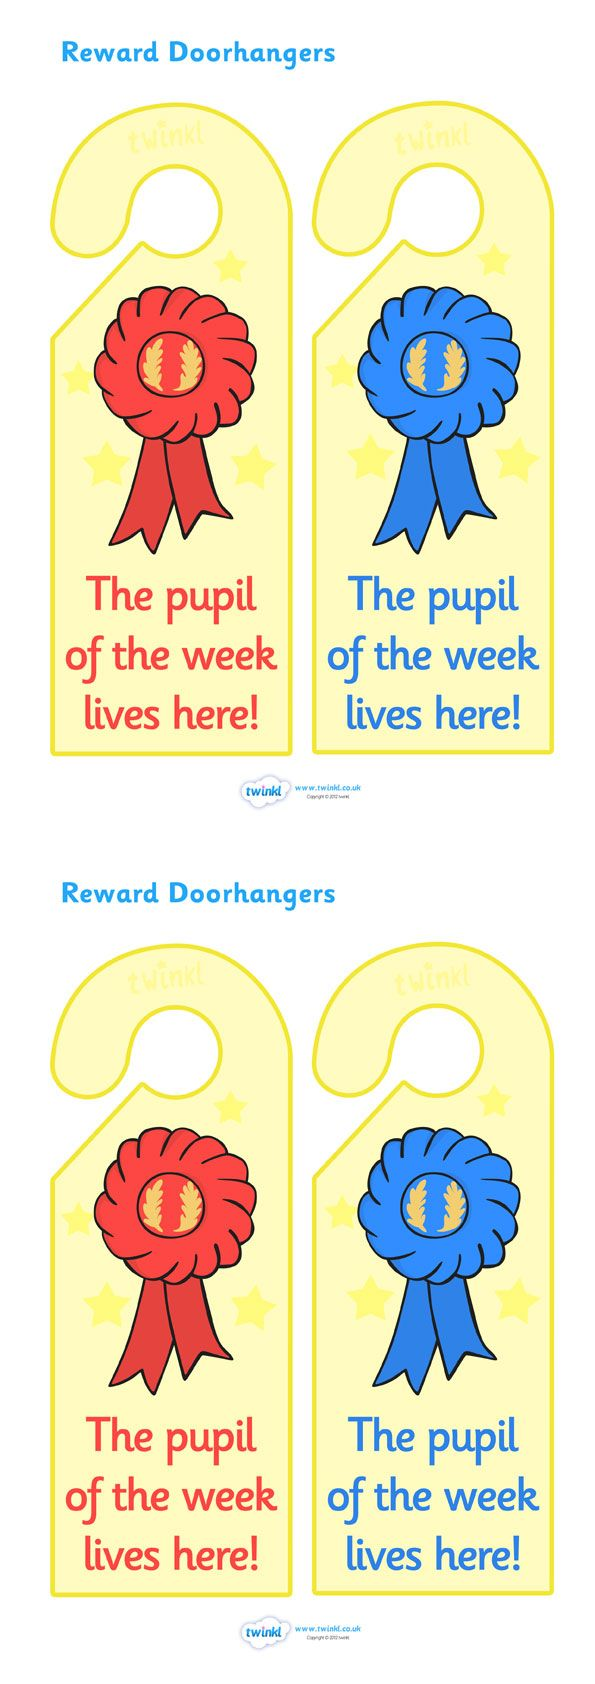 Twinkl Resources >> Pupil of The Week Reward Door Hangers  >> Thousands of printable primary teaching resources for EYFS, KS1, KS2 and beyond! reward, award, door hangers, decoration, winner, encouragement, pupil of the week